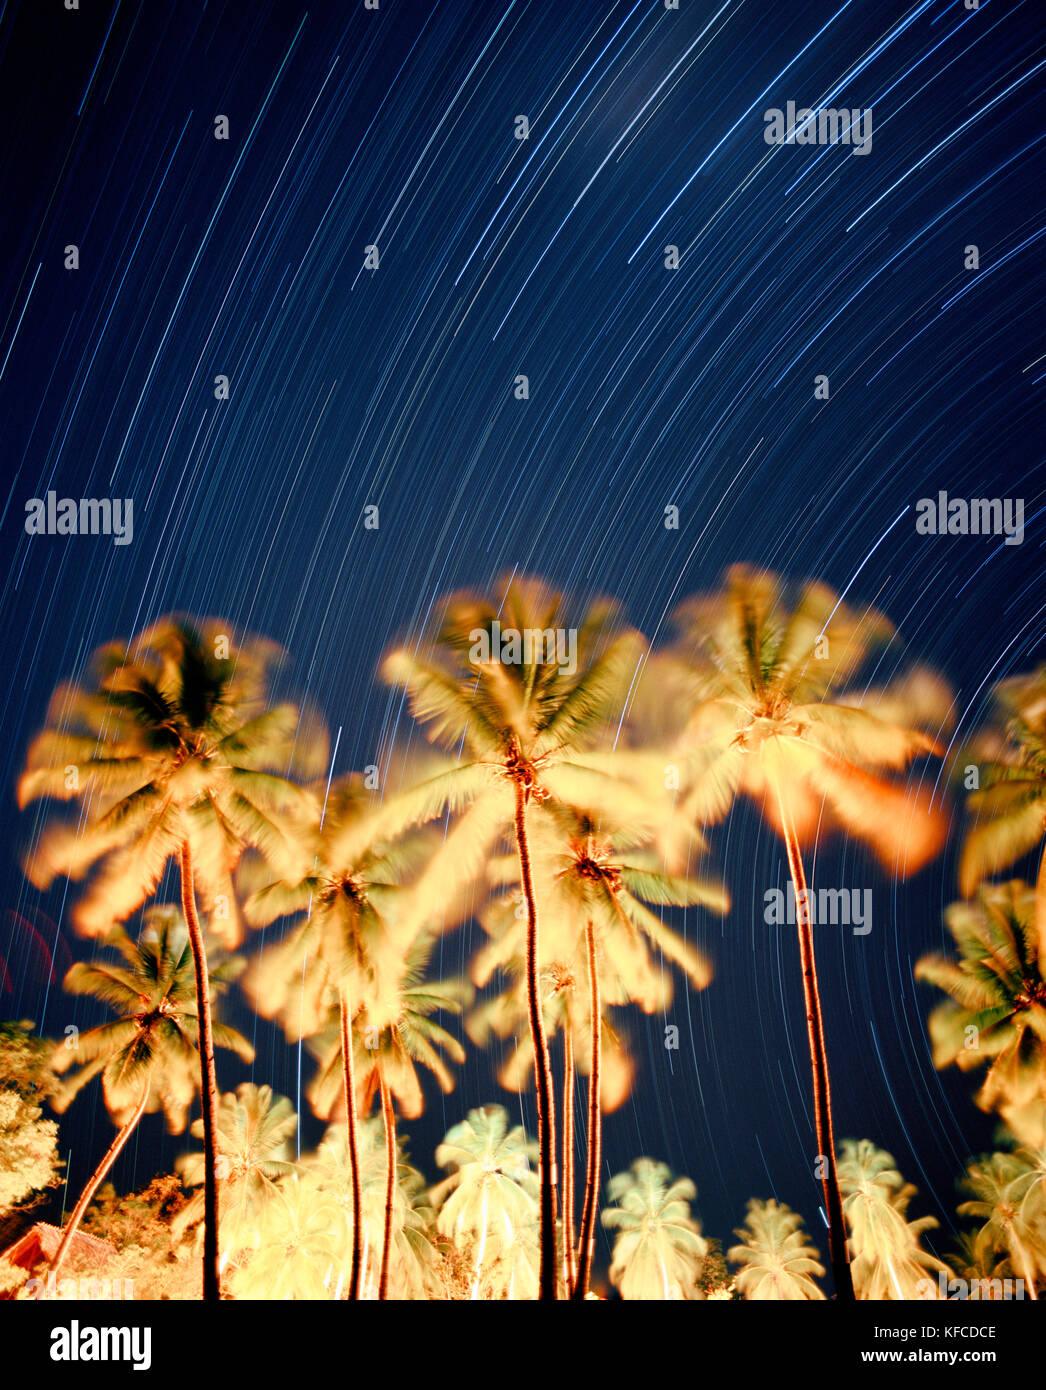 MADAGASCAR, palm trees with star trails at night, Anjajavy Hotel - Stock Image